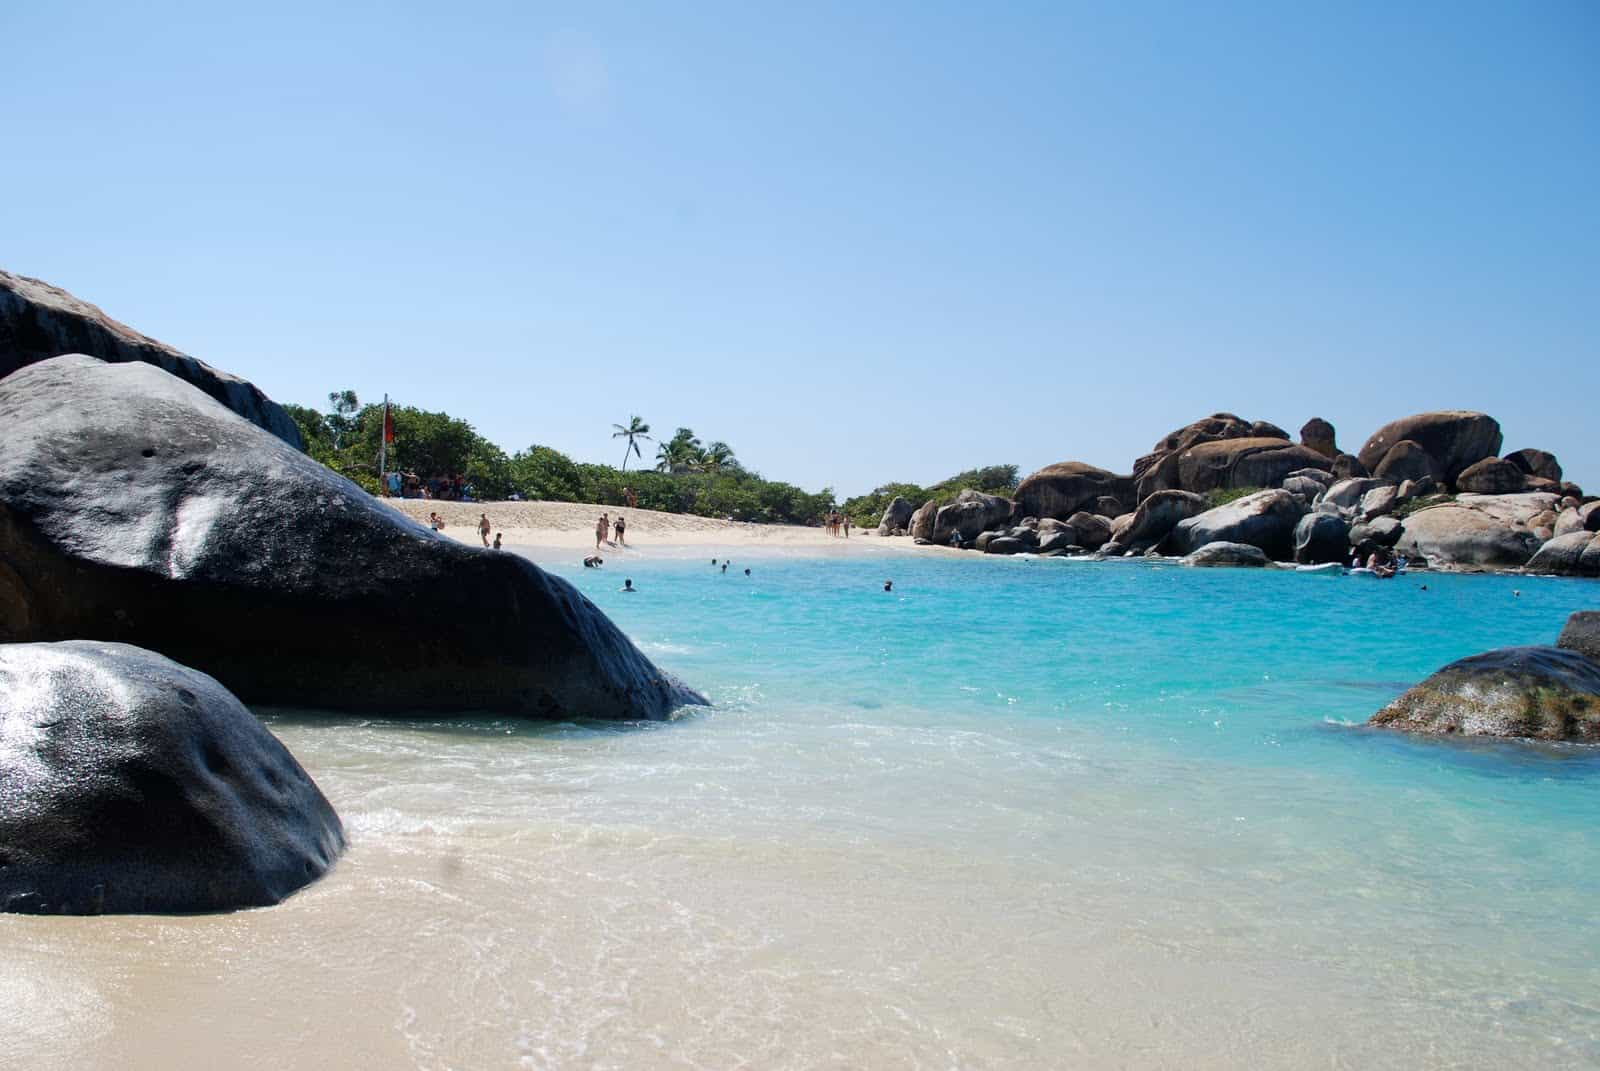 Virgin Gorda, British Virgin Islands, all about cruises, best cruise deals, best priced cruises, cruise vacation, Eastern Caribbean Cruise Itinerary, last minute cruises